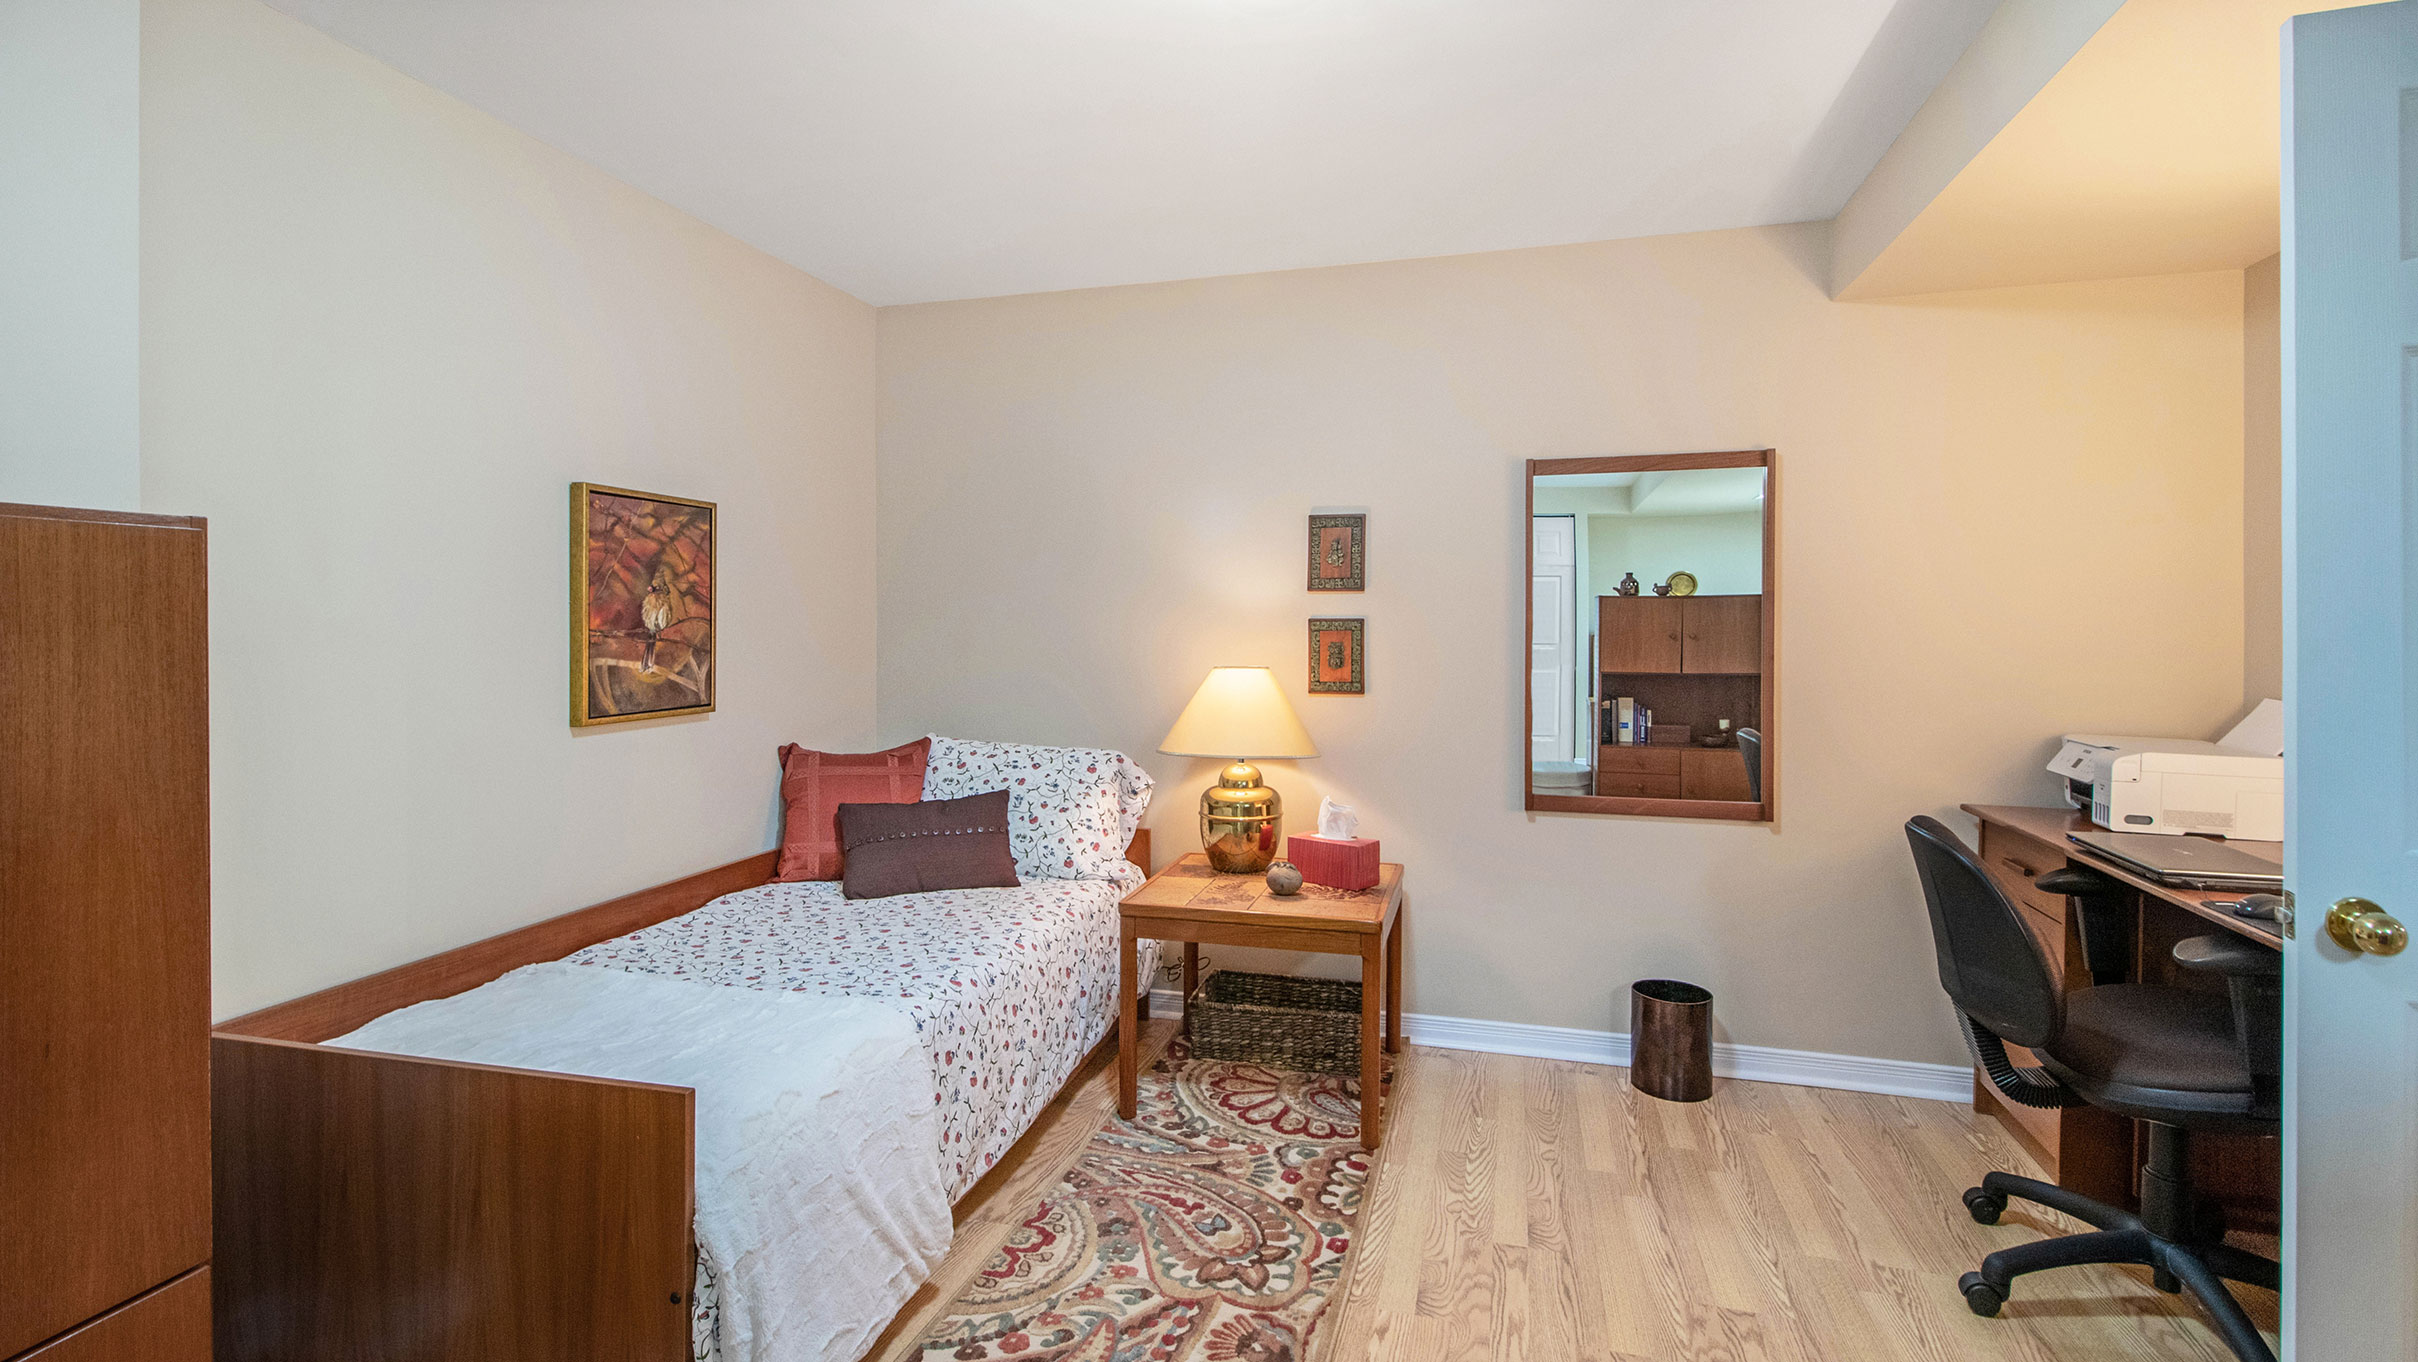 Located in the lower level, this space is typically not fully finished like this but makes for a great guest bedroom, exercise room, craft room etc